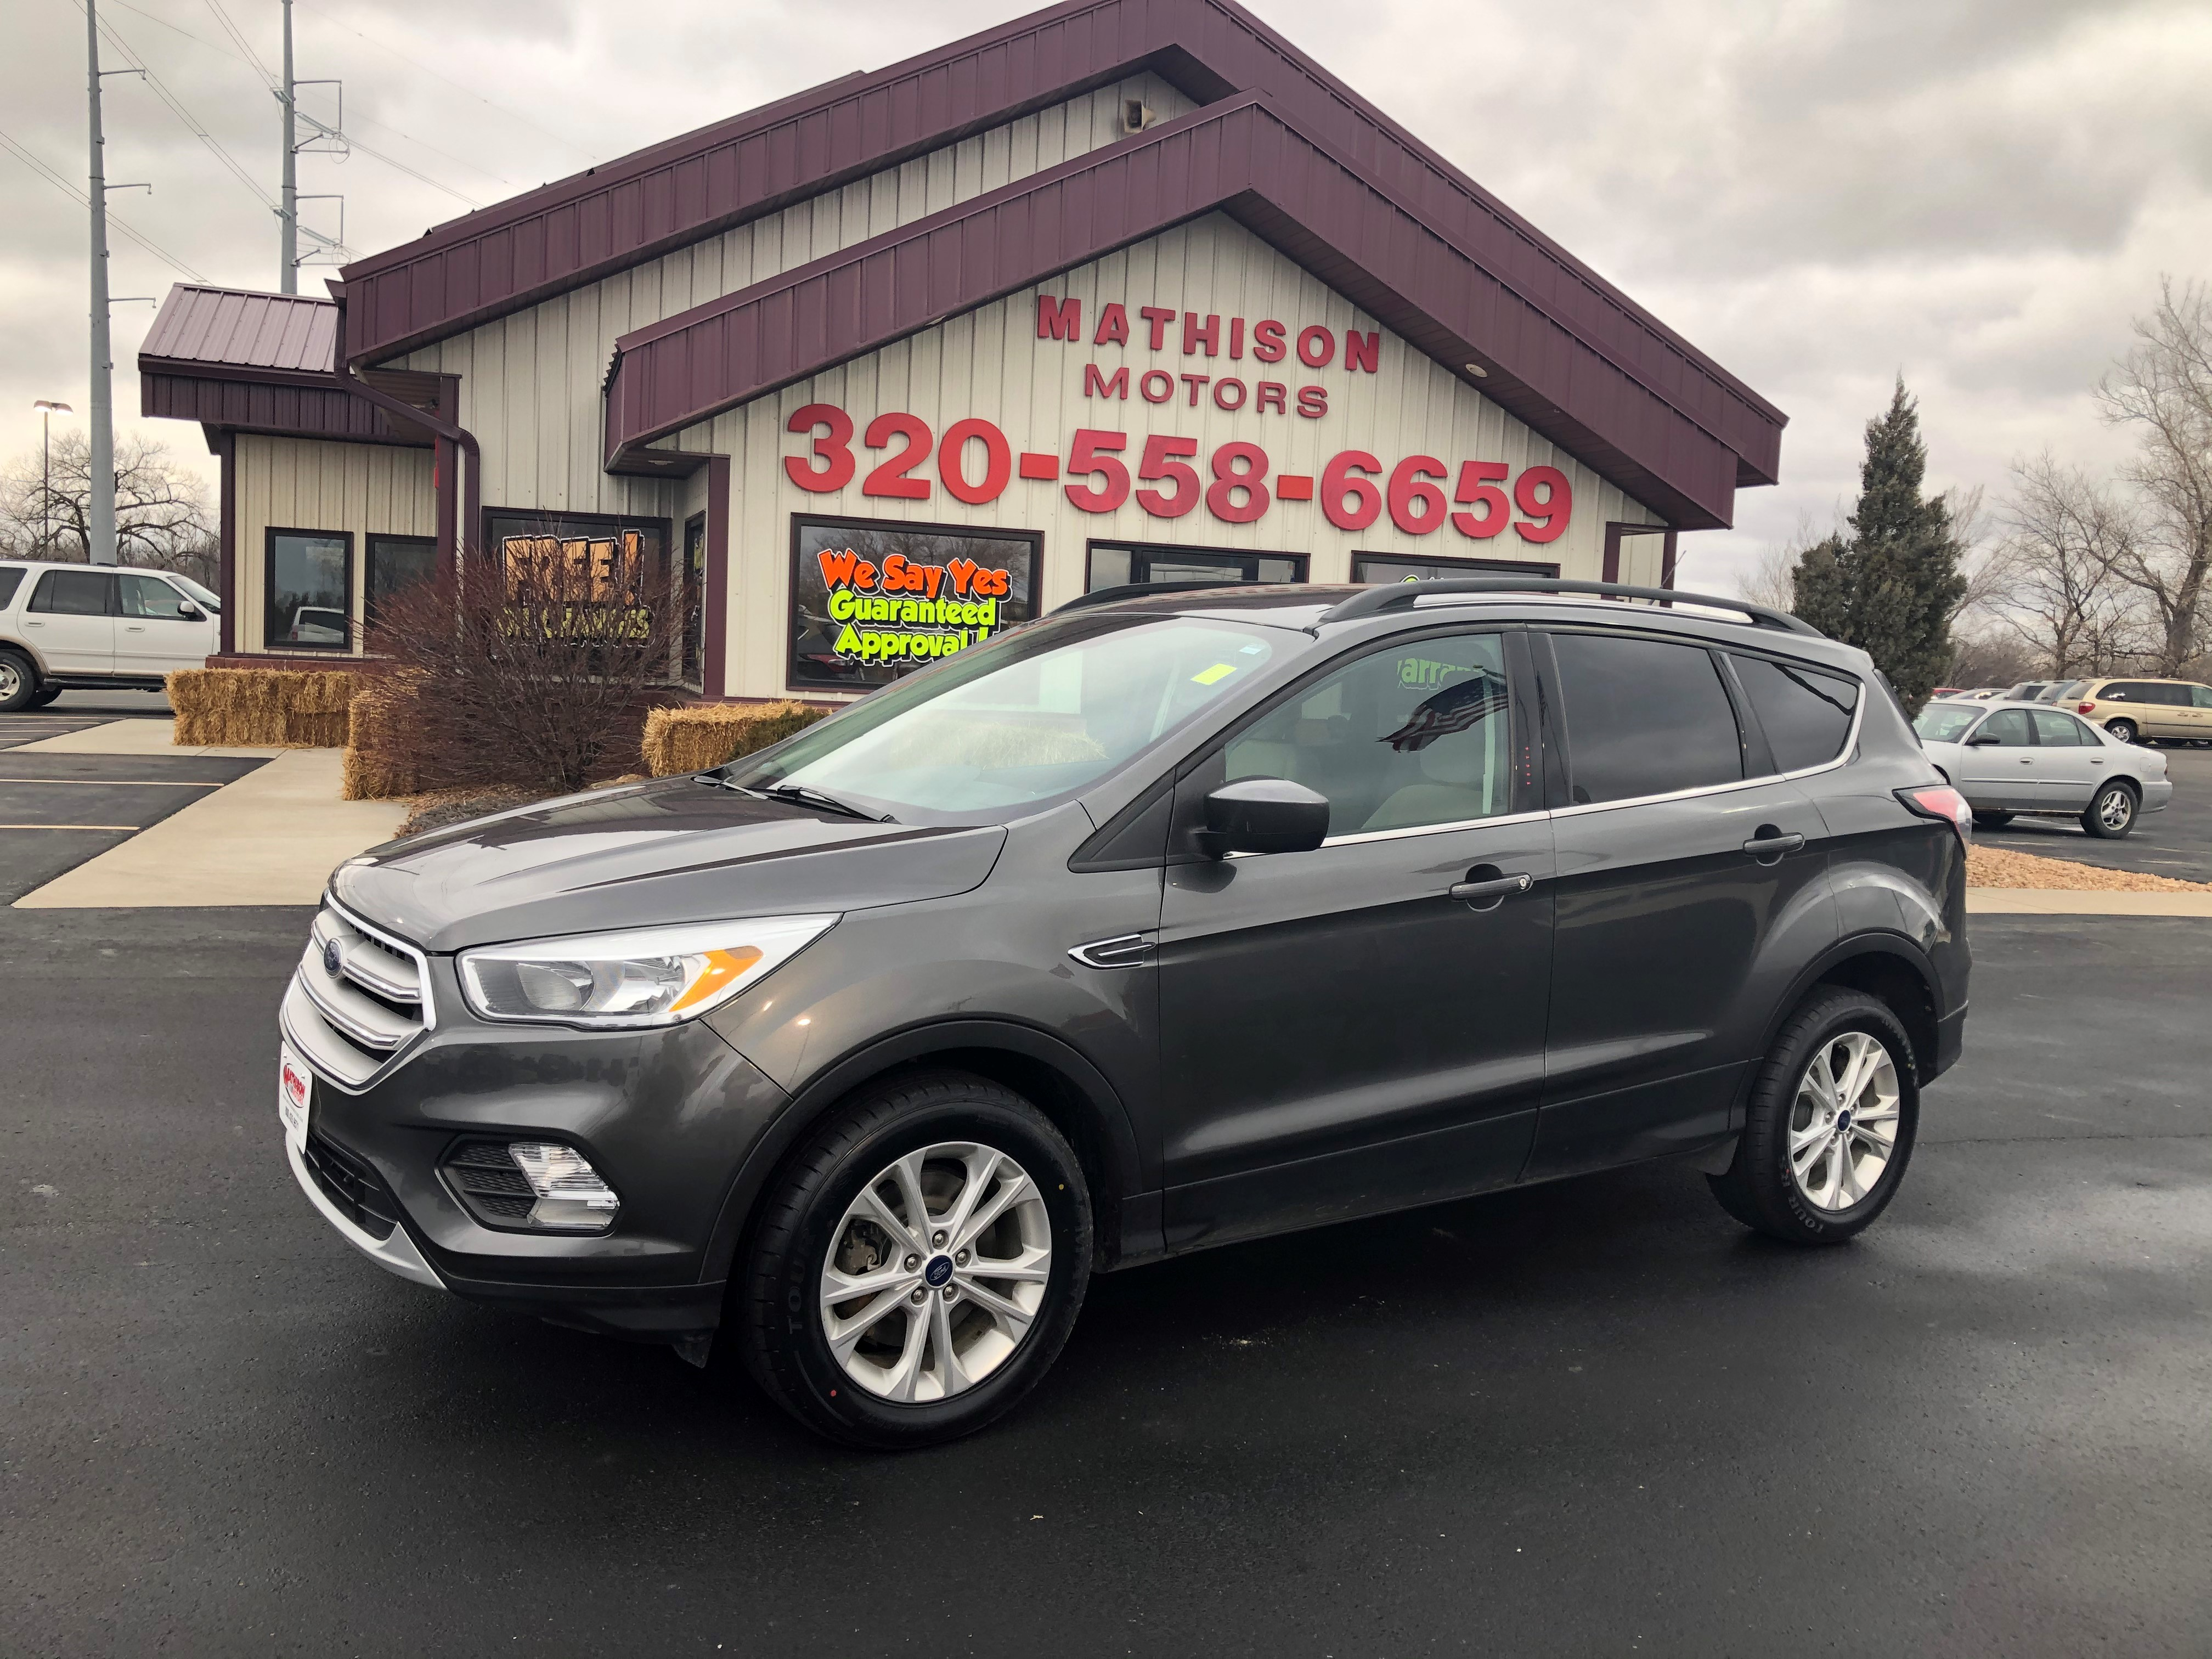 used vehicle - SUV FORD ESCAPE 2018